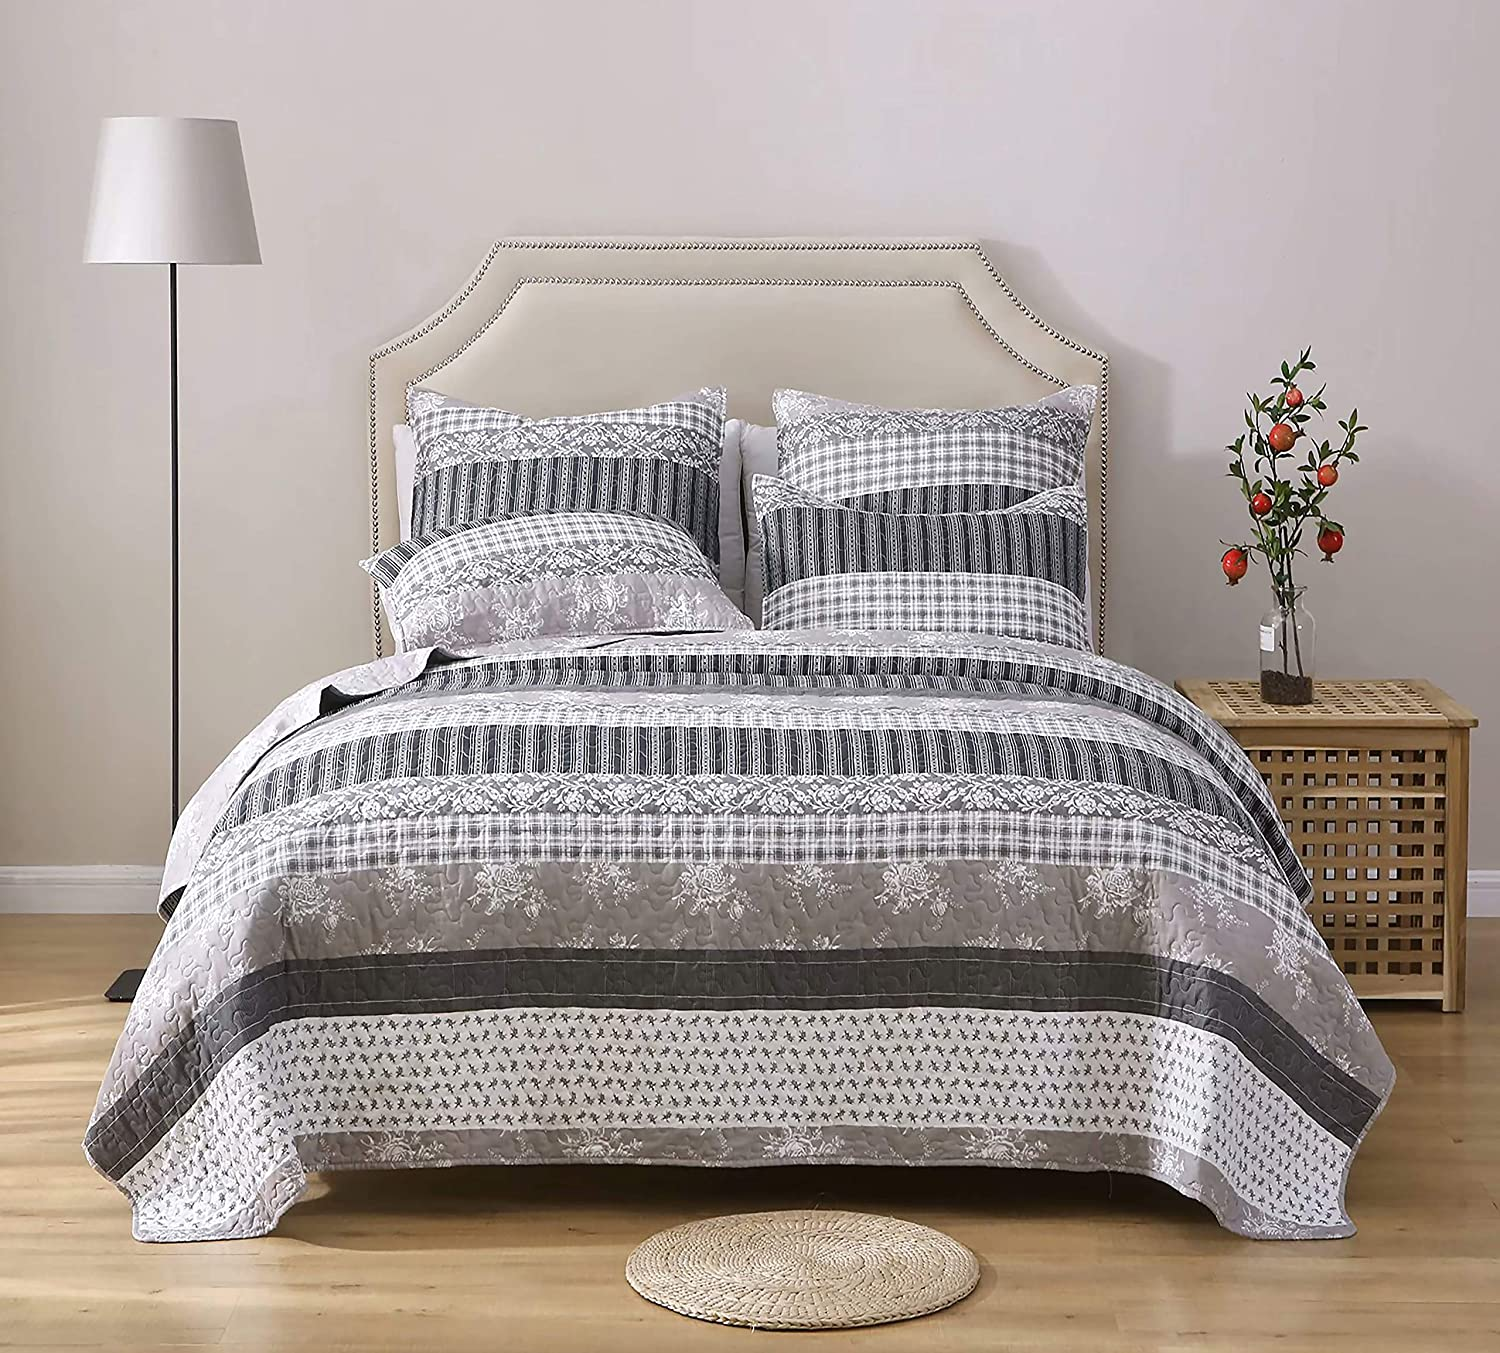 AiJar Home Grey Stripe Floral Patchwork 3-Piece Queen Size (88 x 92) Quilt/Bedding Set with Pillow Shams, Modern Chic Printed Pattern, Lightweight Microfiber Bedspread/Coverlet/Bed Cover